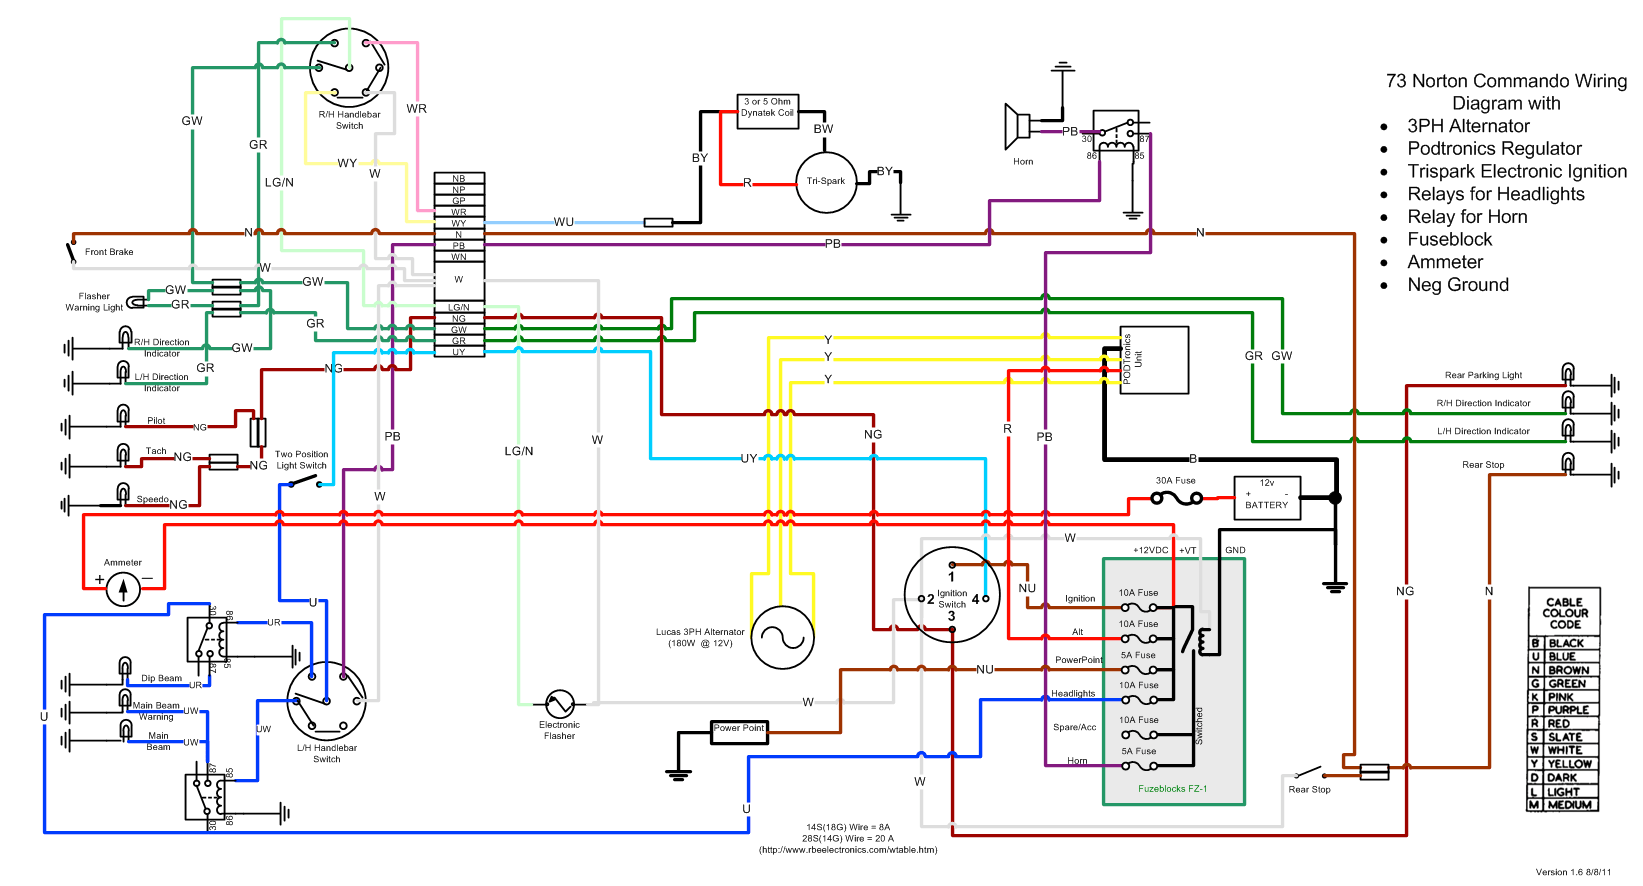 Wiring Schematics For Dummies On Wiring Images Free Download